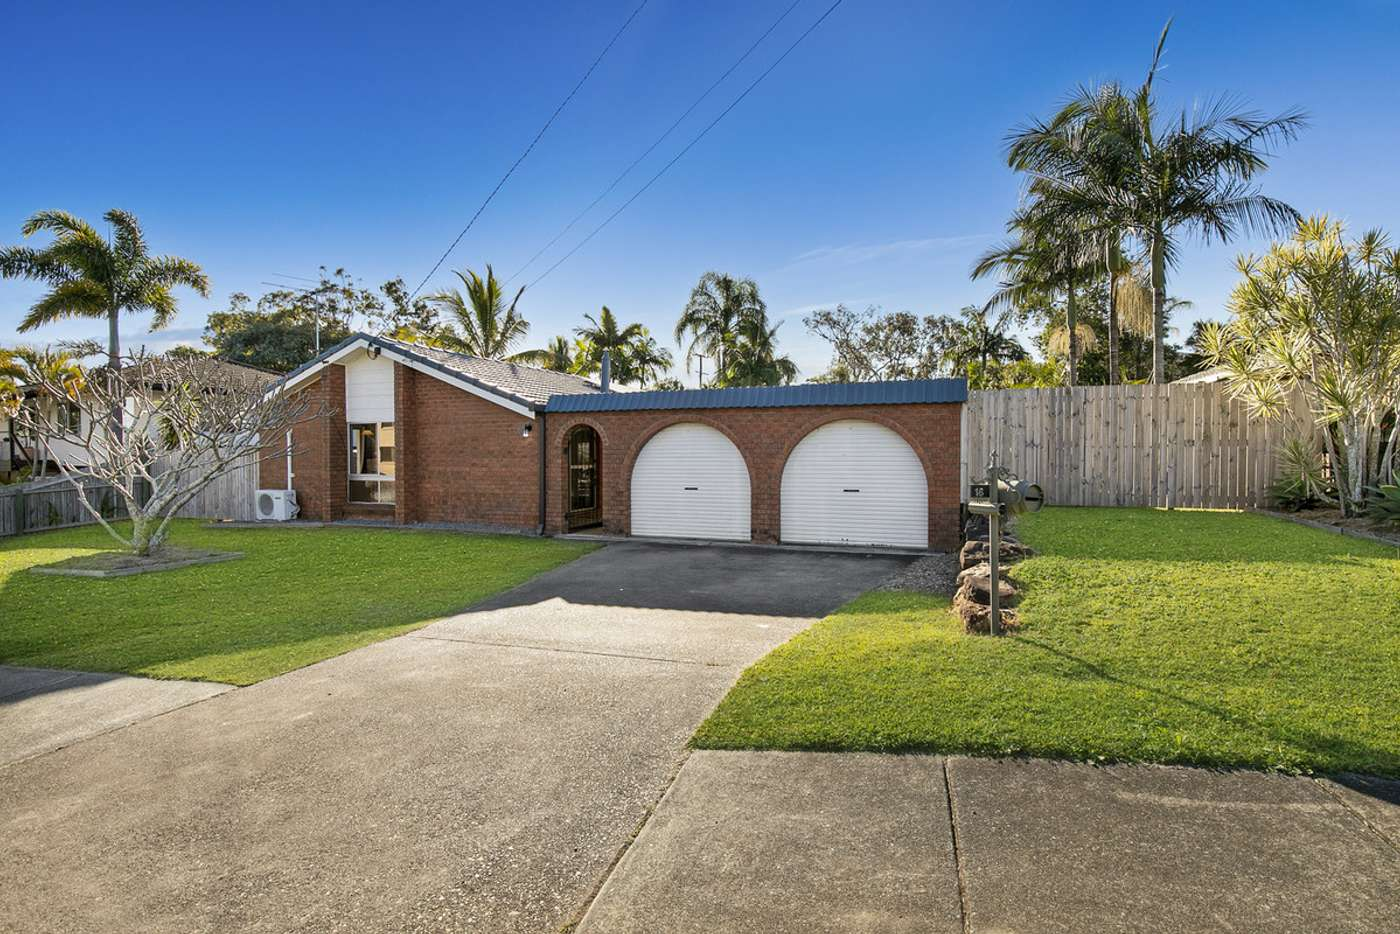 Main view of Homely house listing, 16 Hampshire Crescent, Alexandra Hills QLD 4161